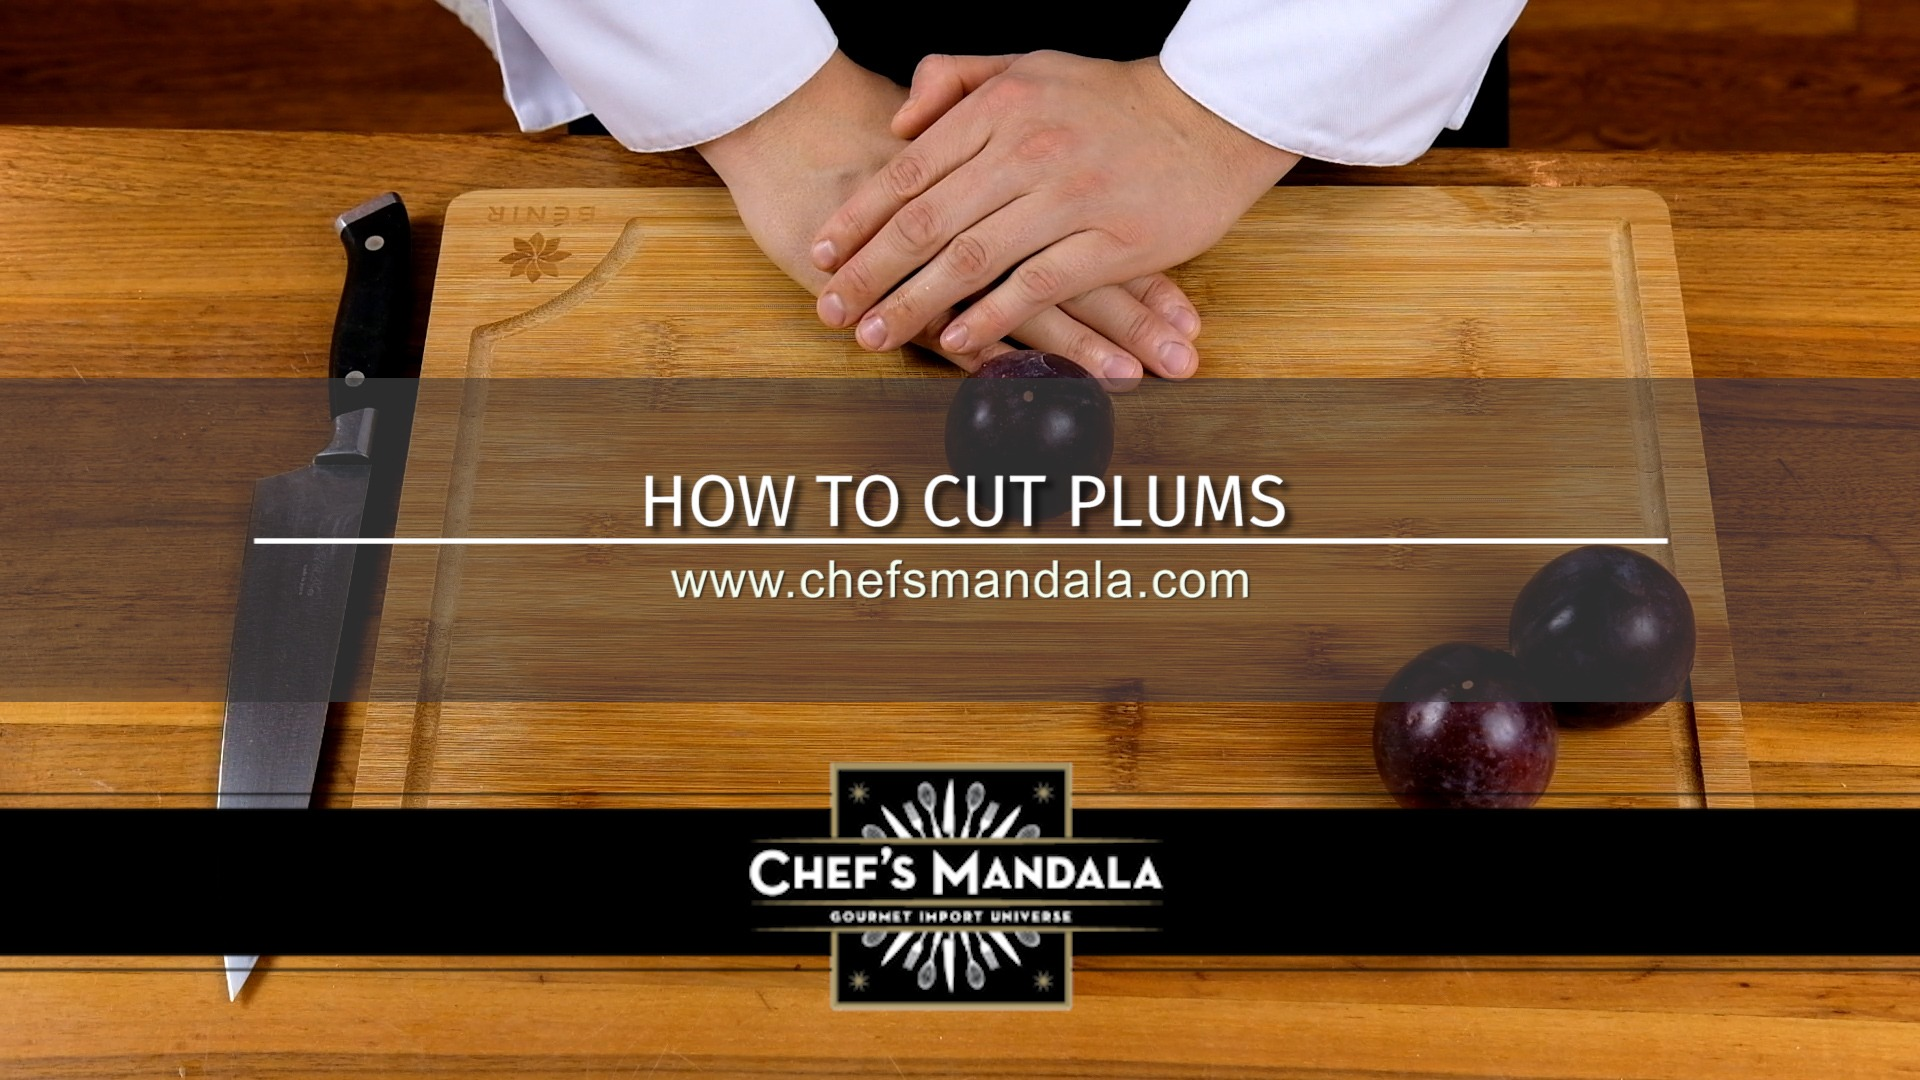 HOW TO CUT PLUMS